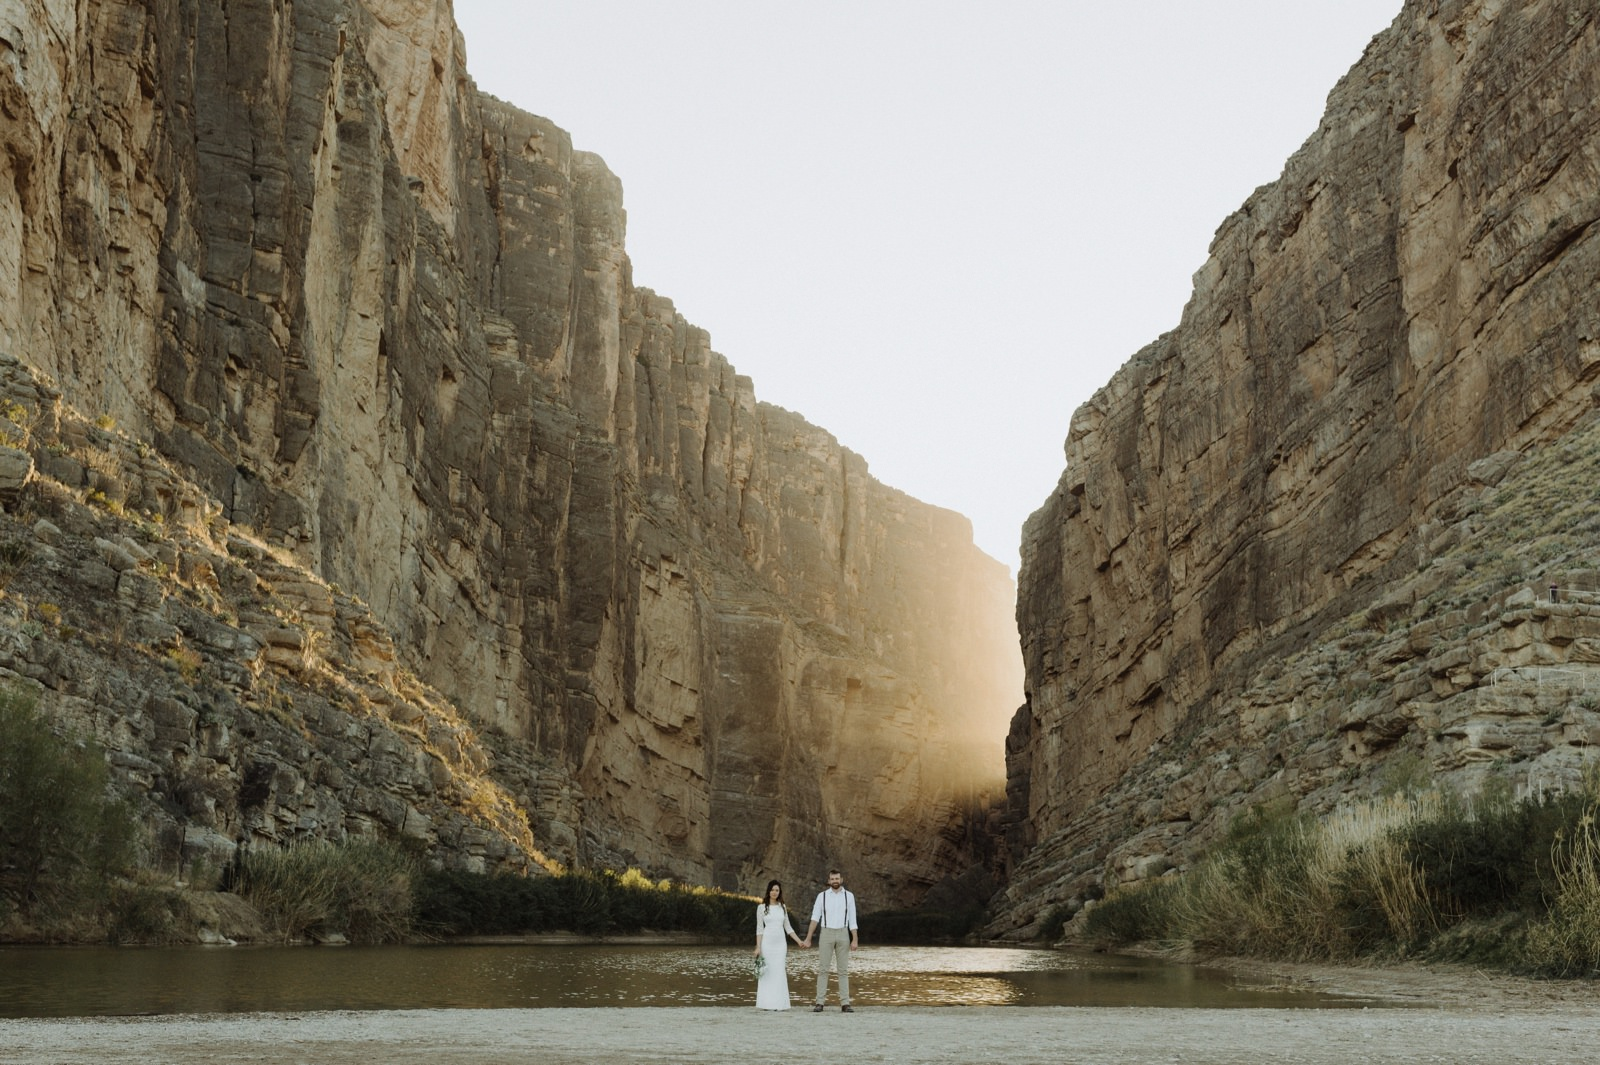 Sunset elopement portraits at Santa Elena Canyon with light pouring in through the rock walls